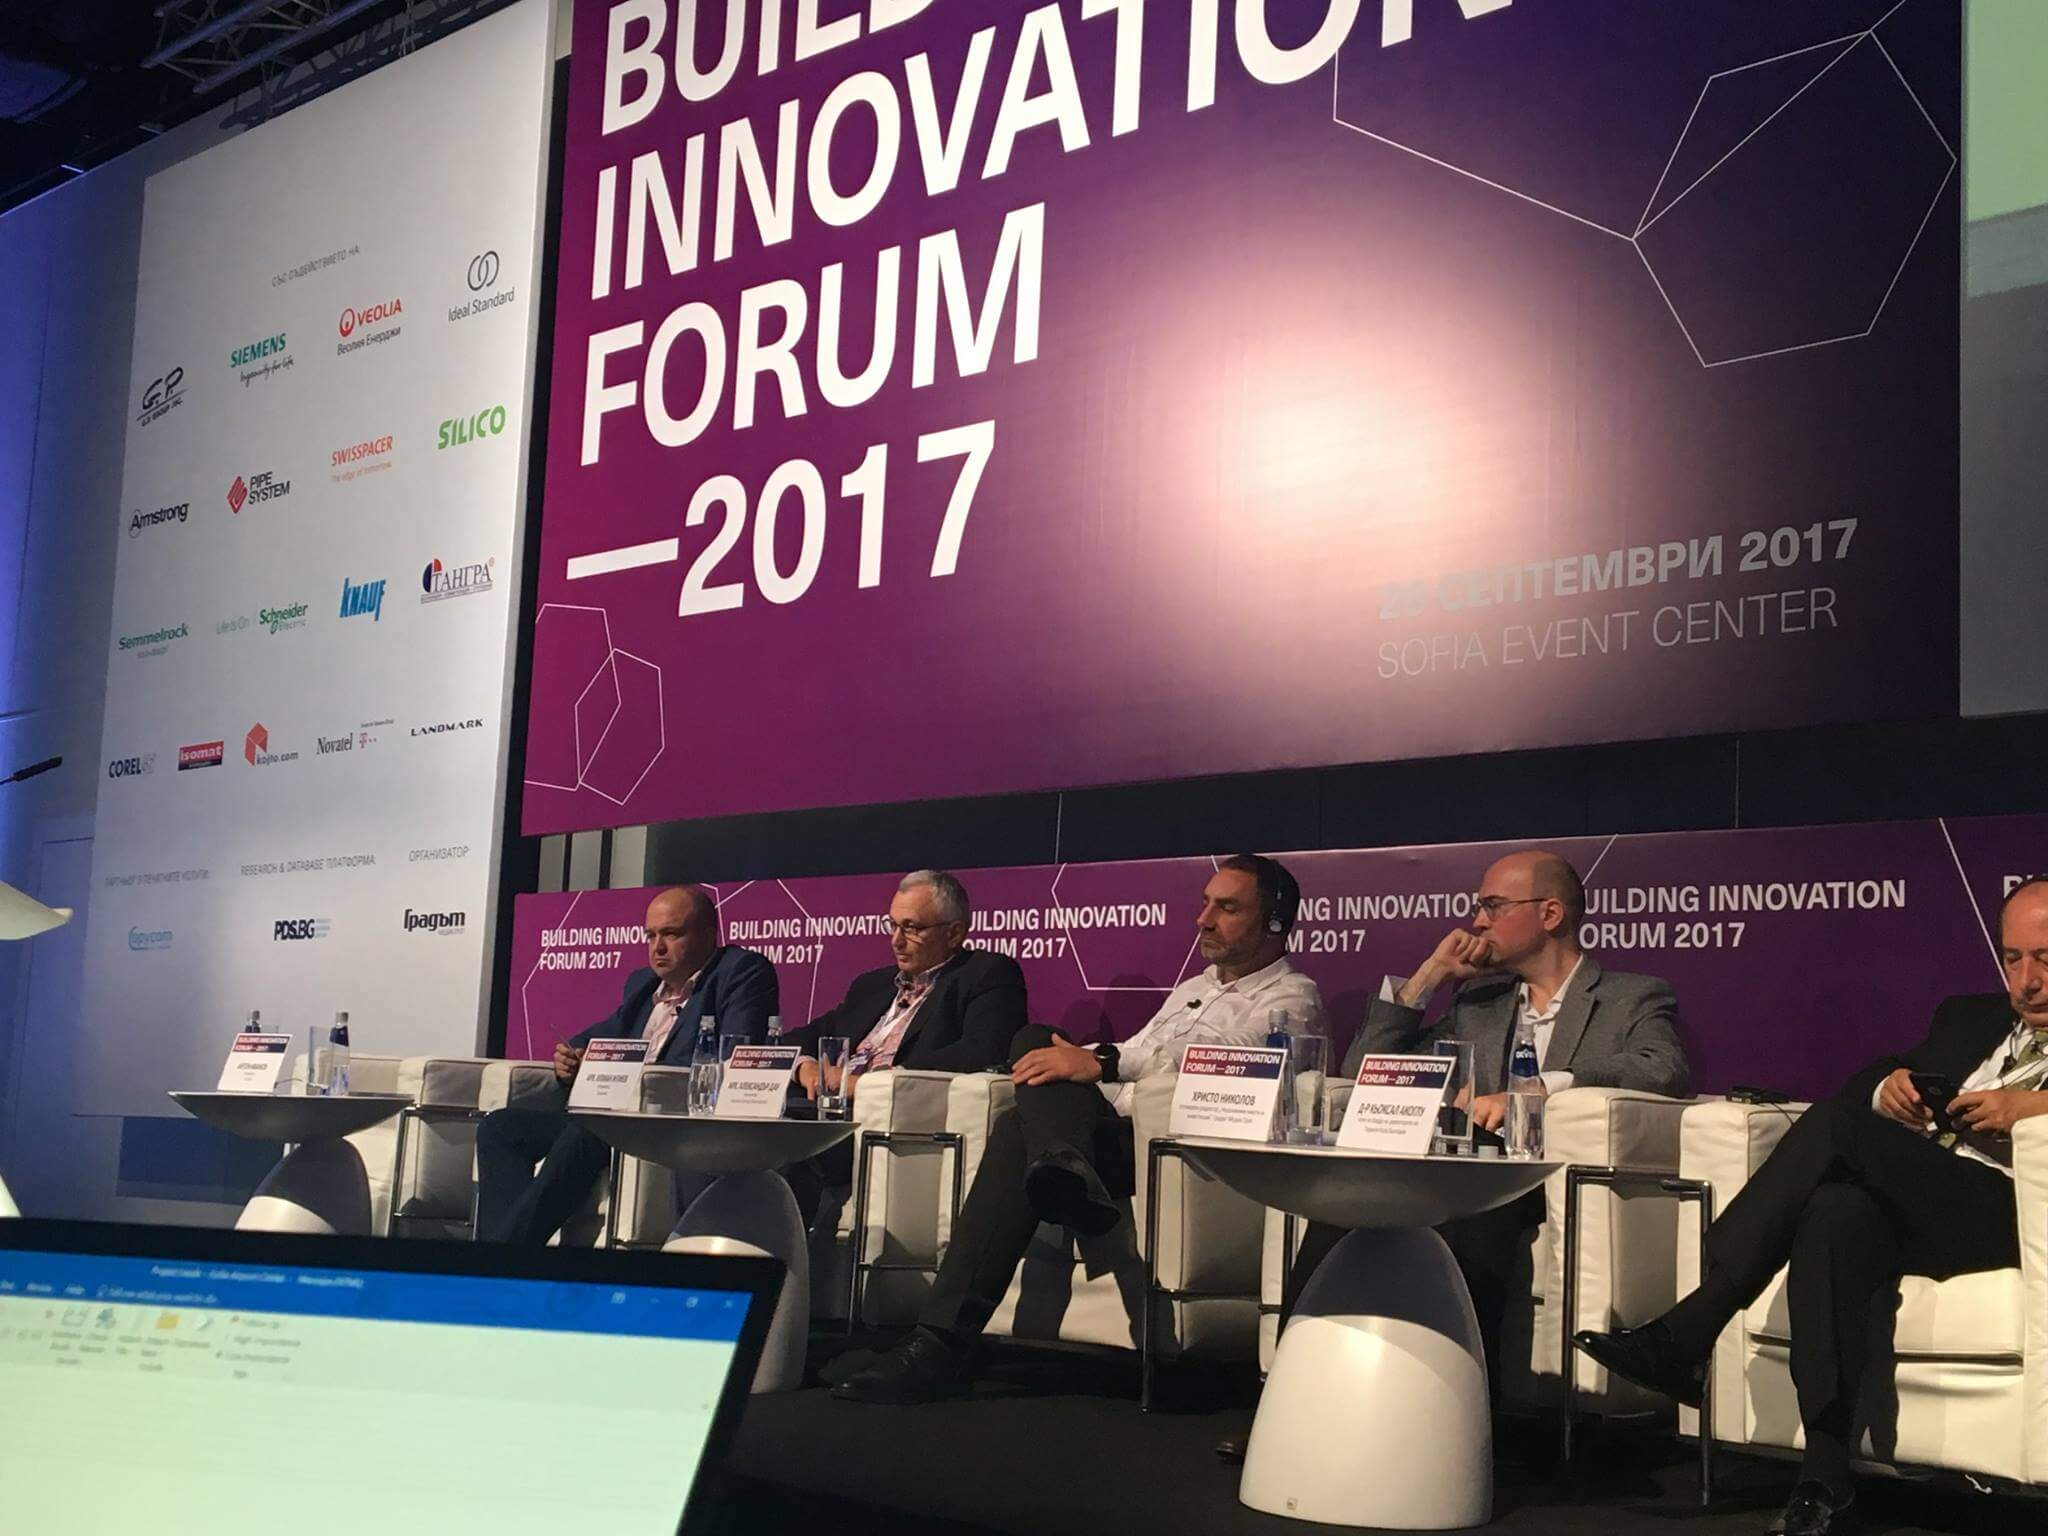 SGI Bulgaria took participation in another event of City Media's BUILDING INNOVATION FORUM 2017